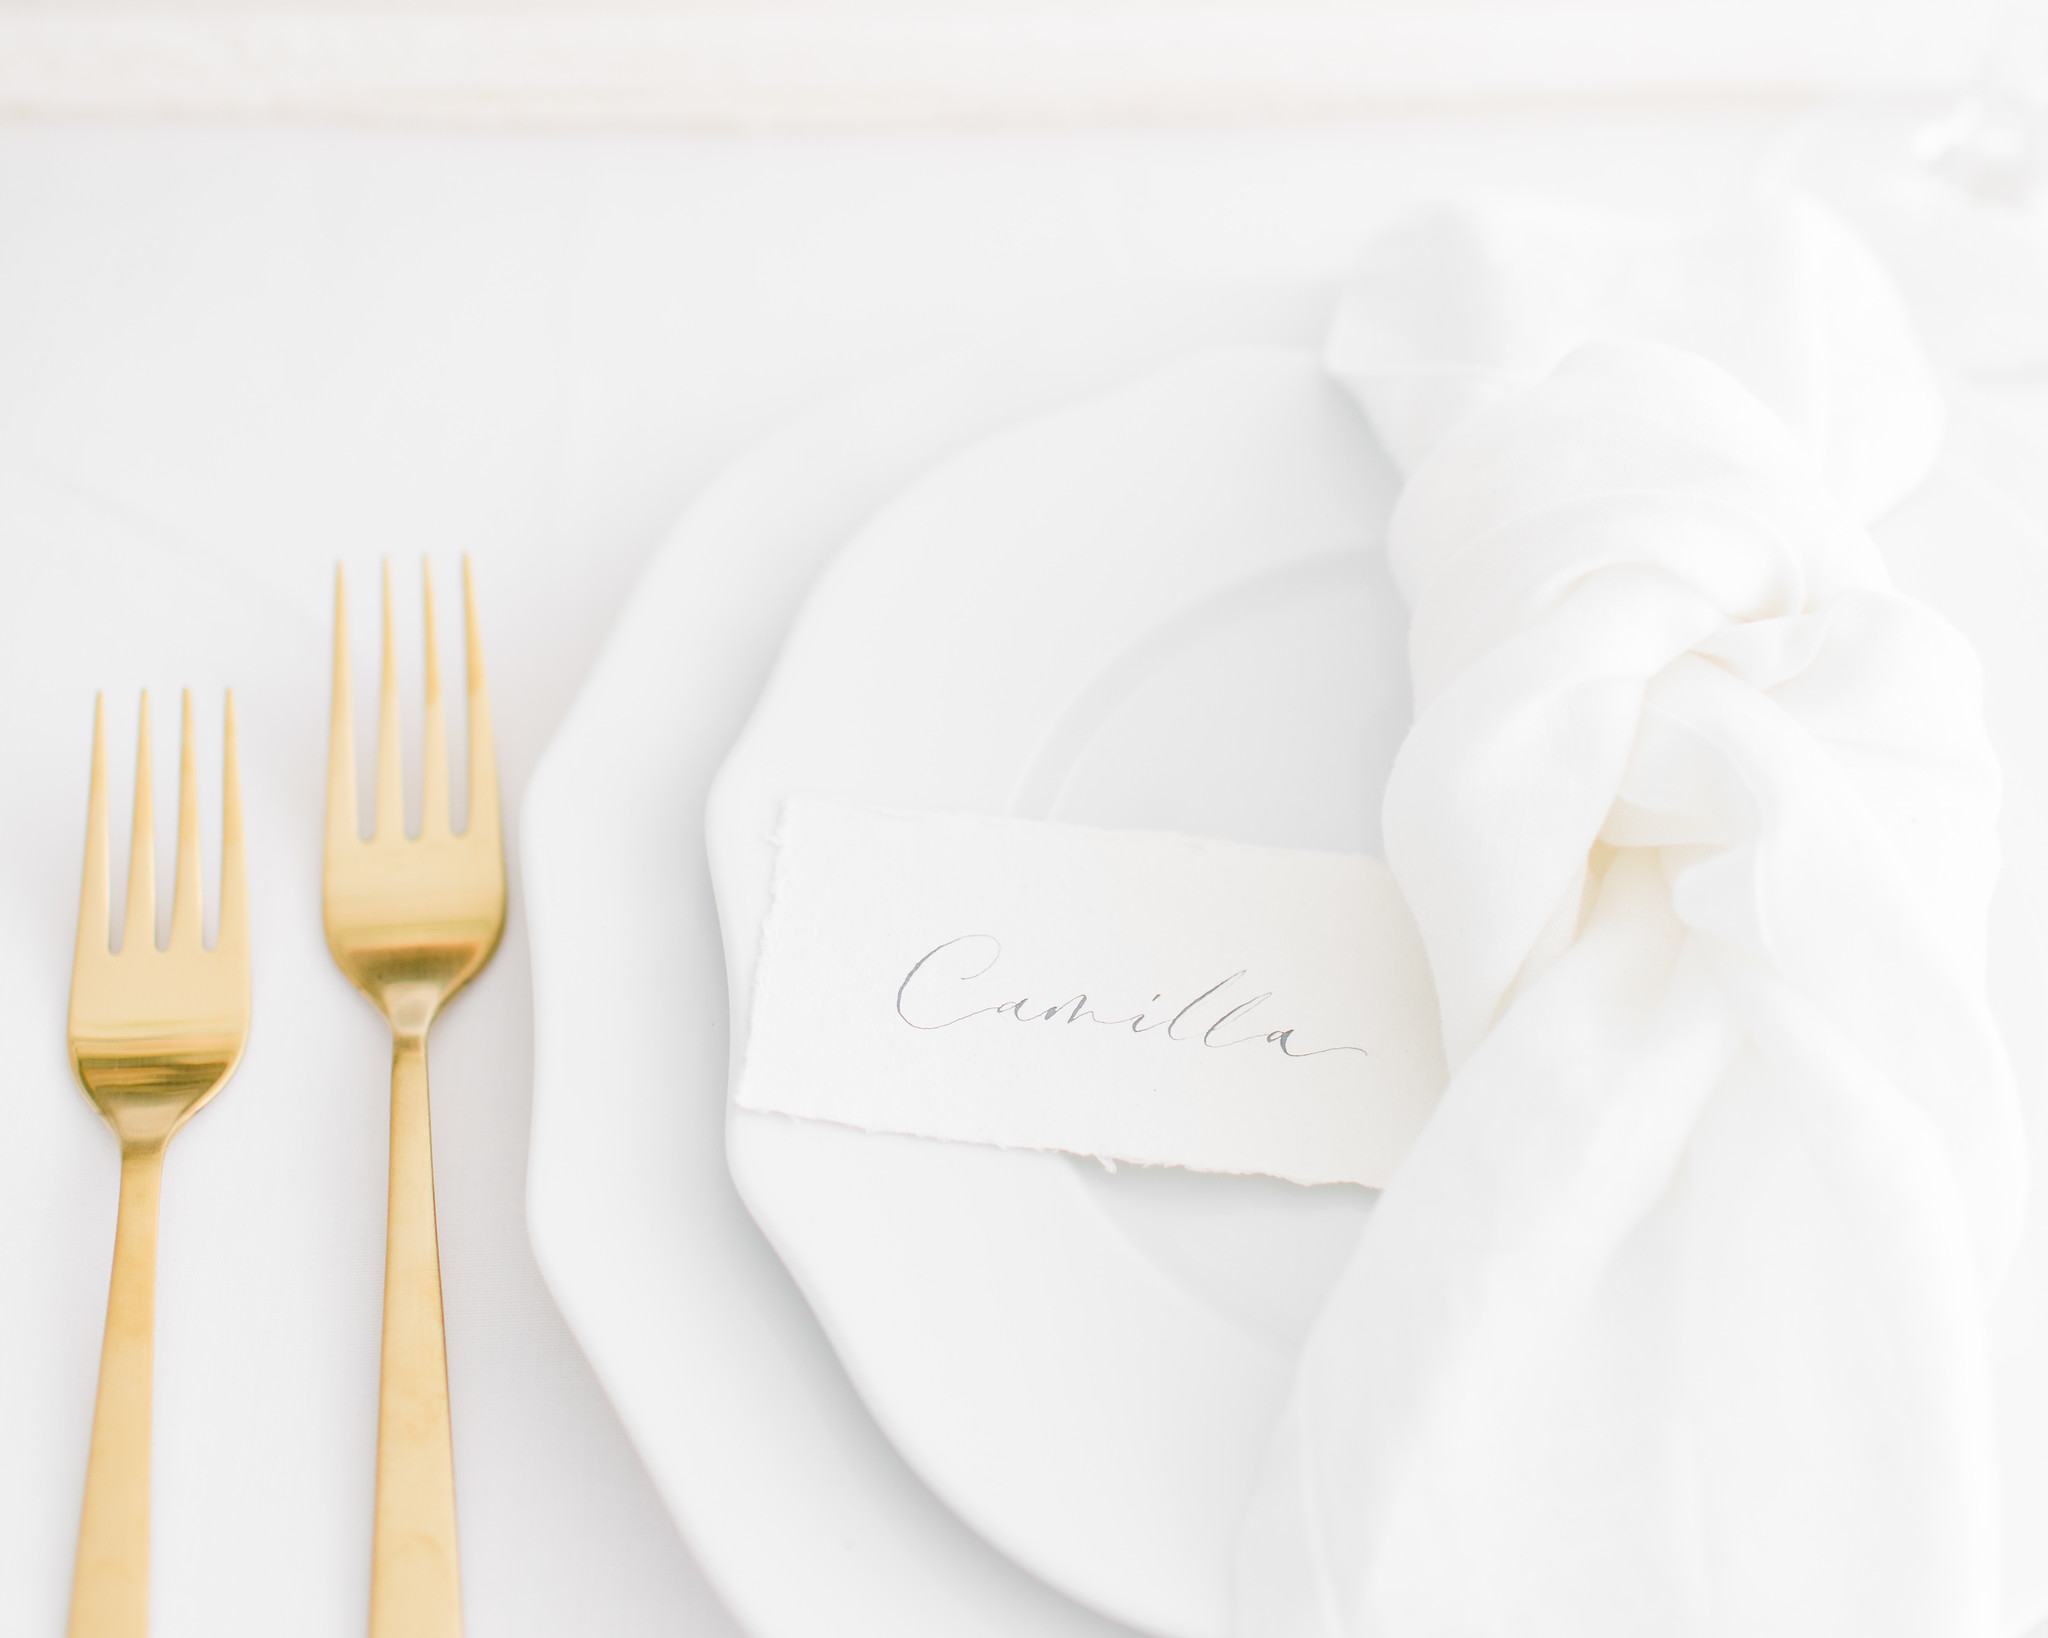 Handmande Placename on plate with gold cutlery